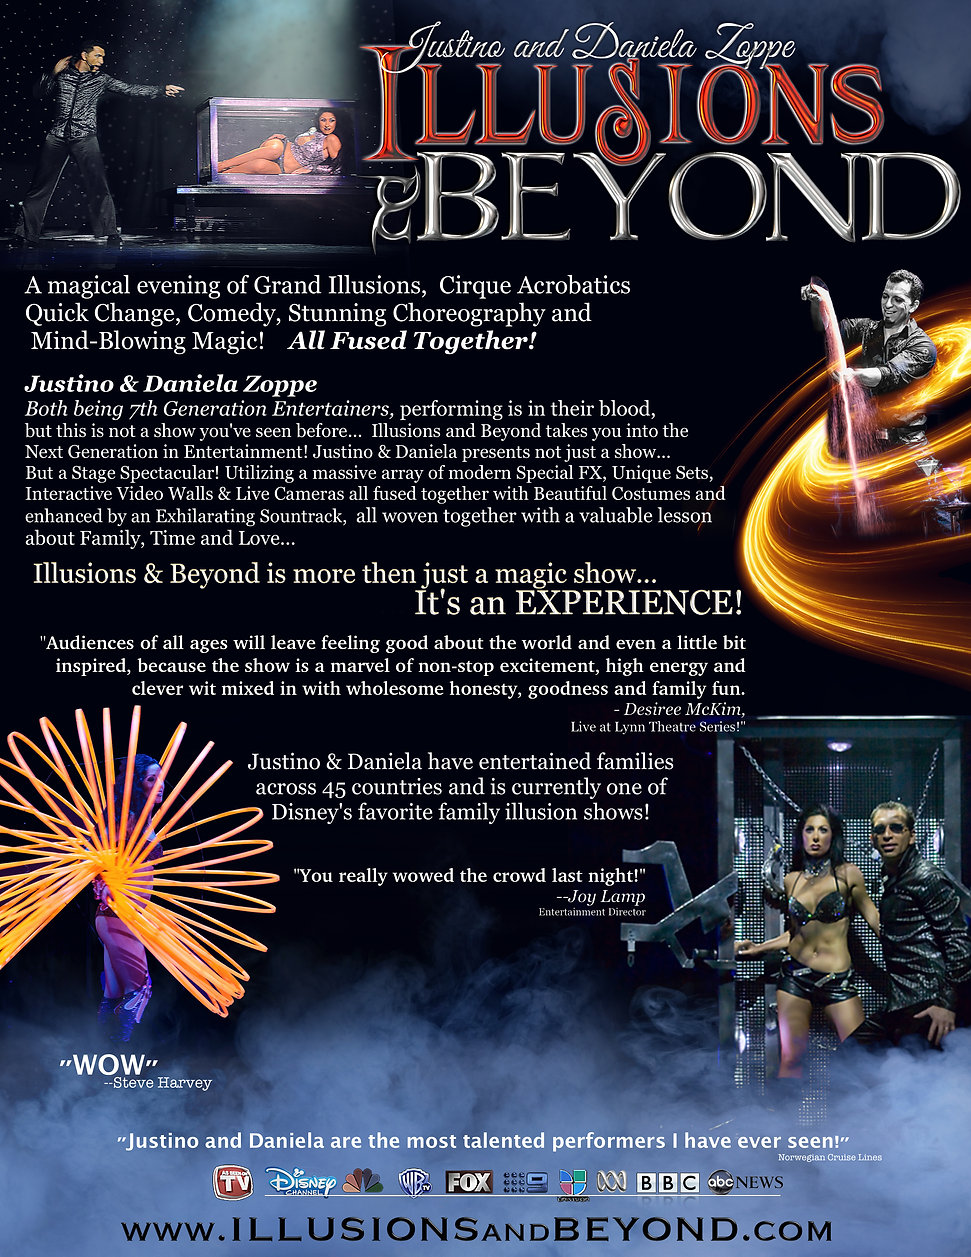 Justino & Daniela Zoppe's Brochure featuring the hit show Illusions and Beyond